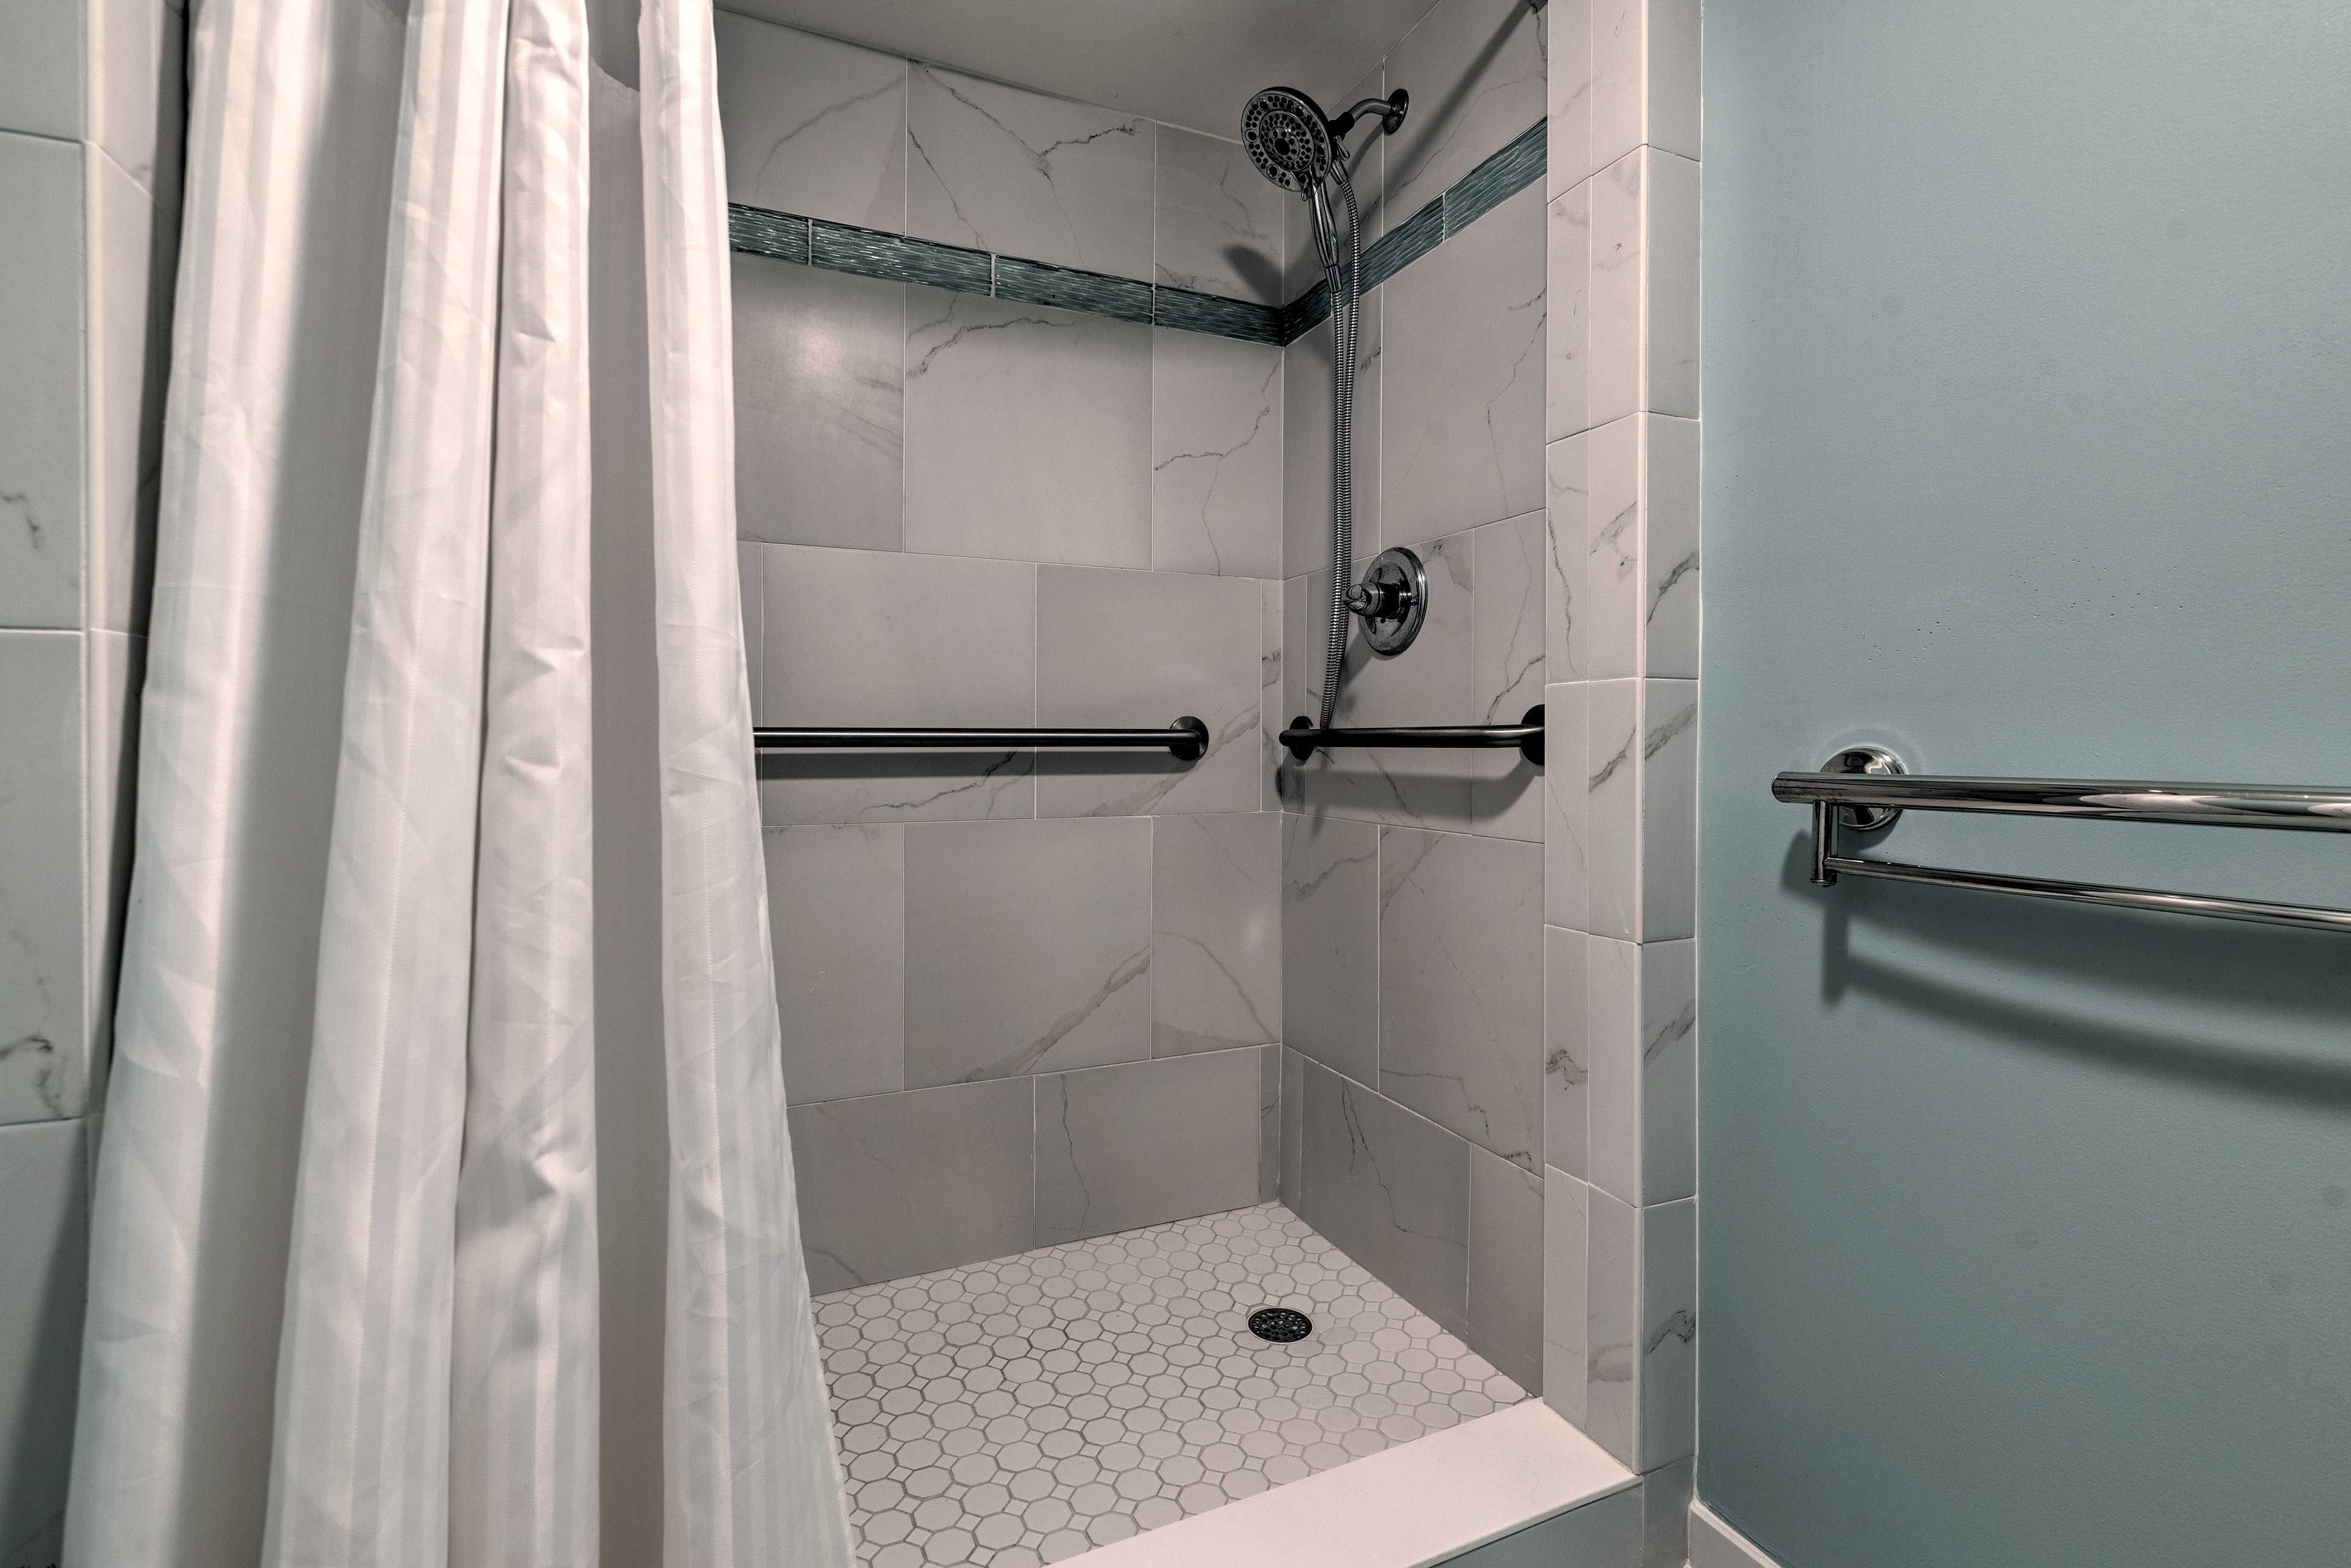 Rinse off in the walk-in shower before crawling under the covers.